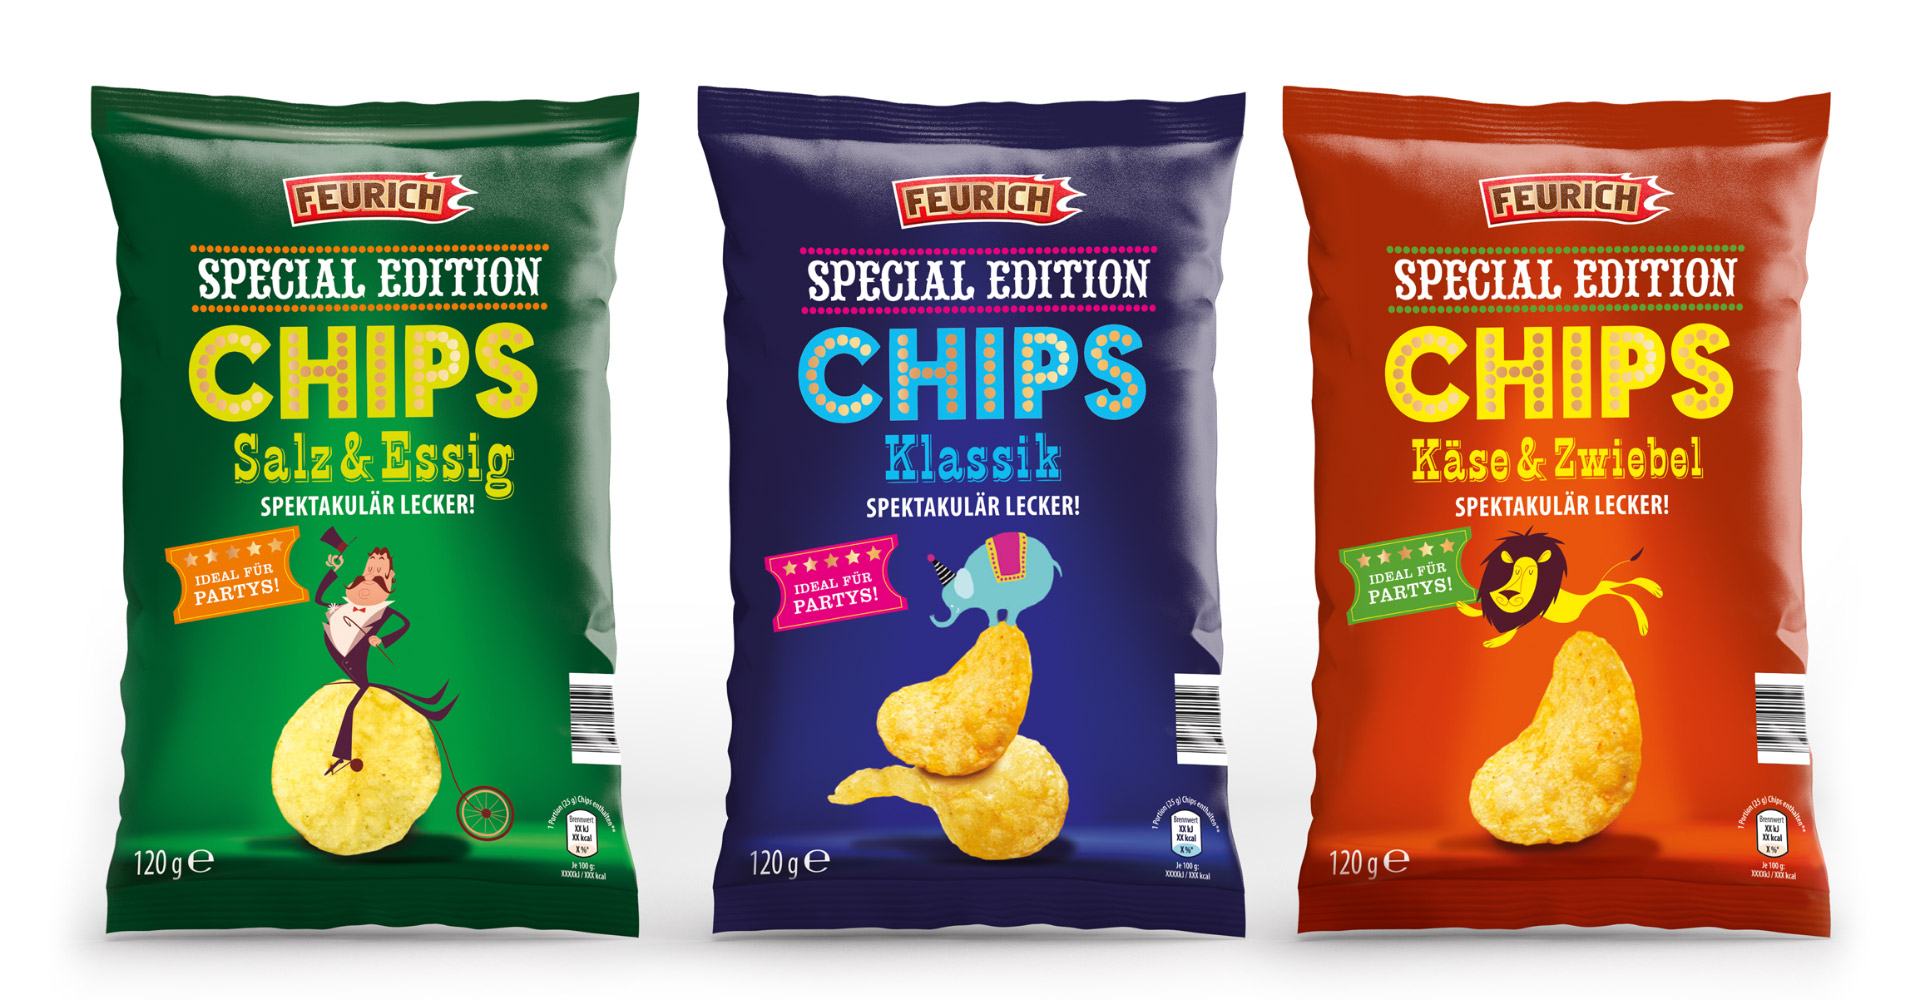 Feurich Special Edition Crisp Packet Design By Louise Russell Design